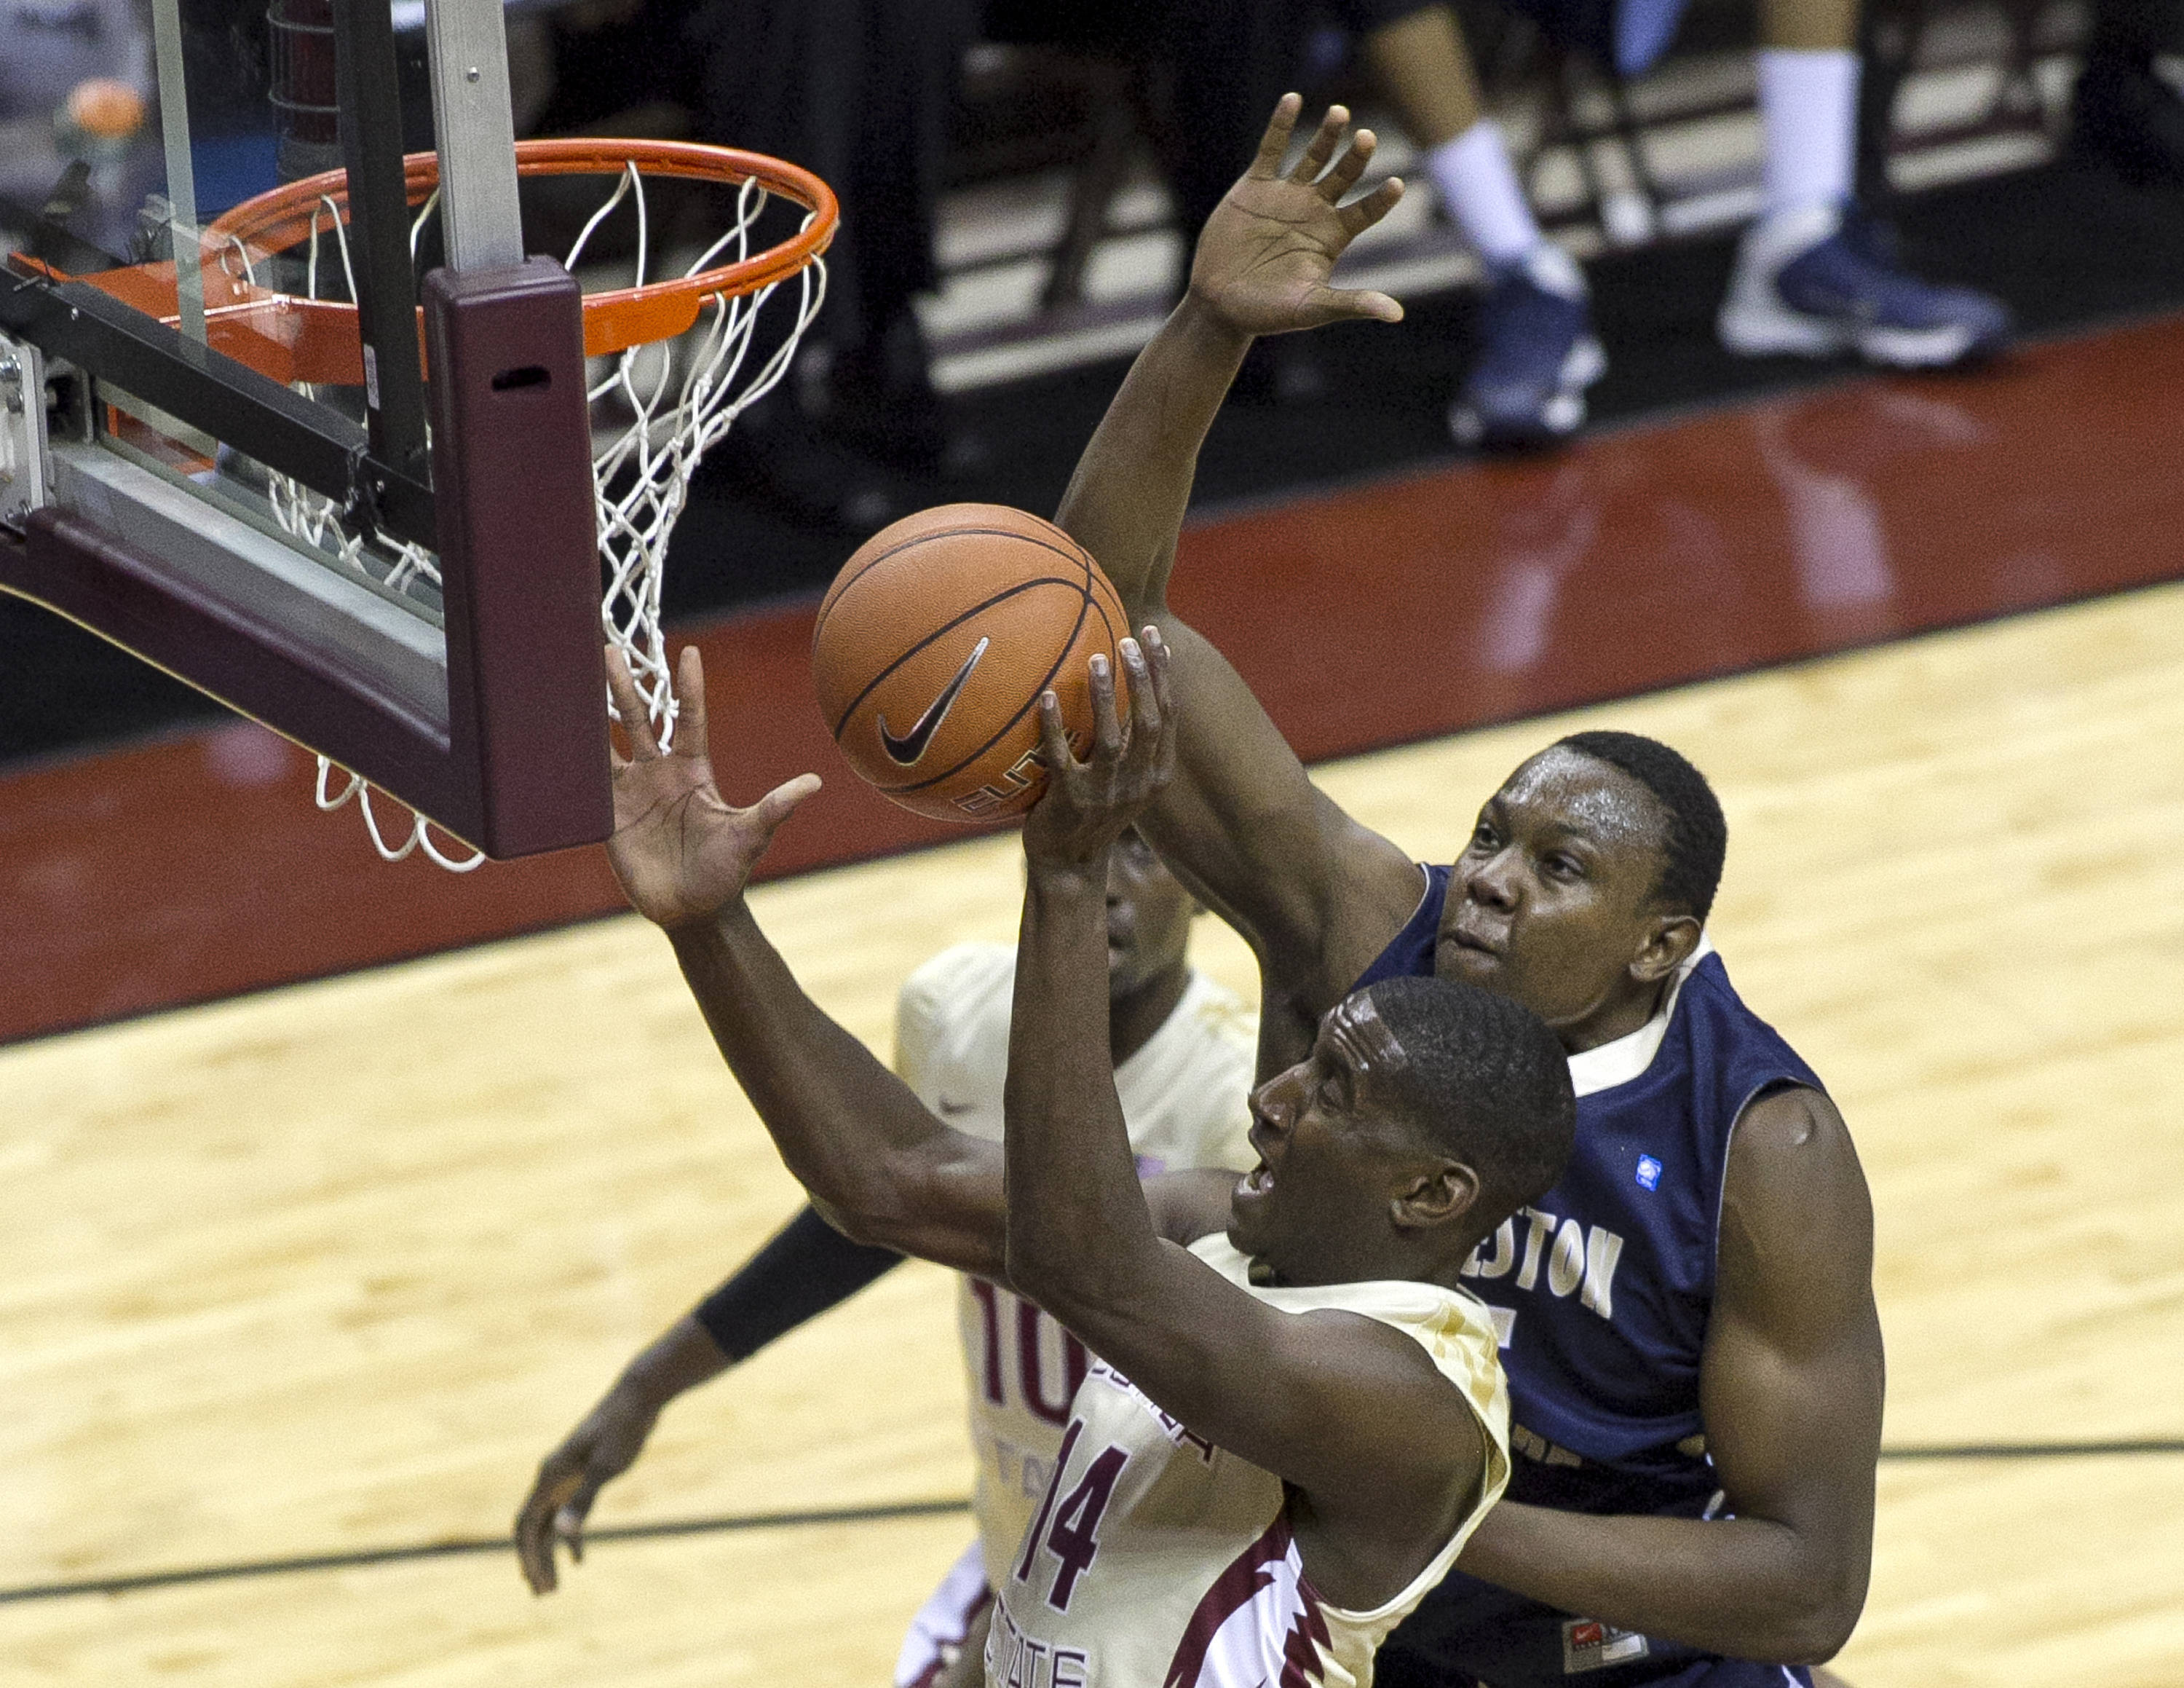 Robert Gilchrist (14) fighting for a layup, FSU vs Charleston Southern, 12-30-13,  (Photo by Steve Musco)